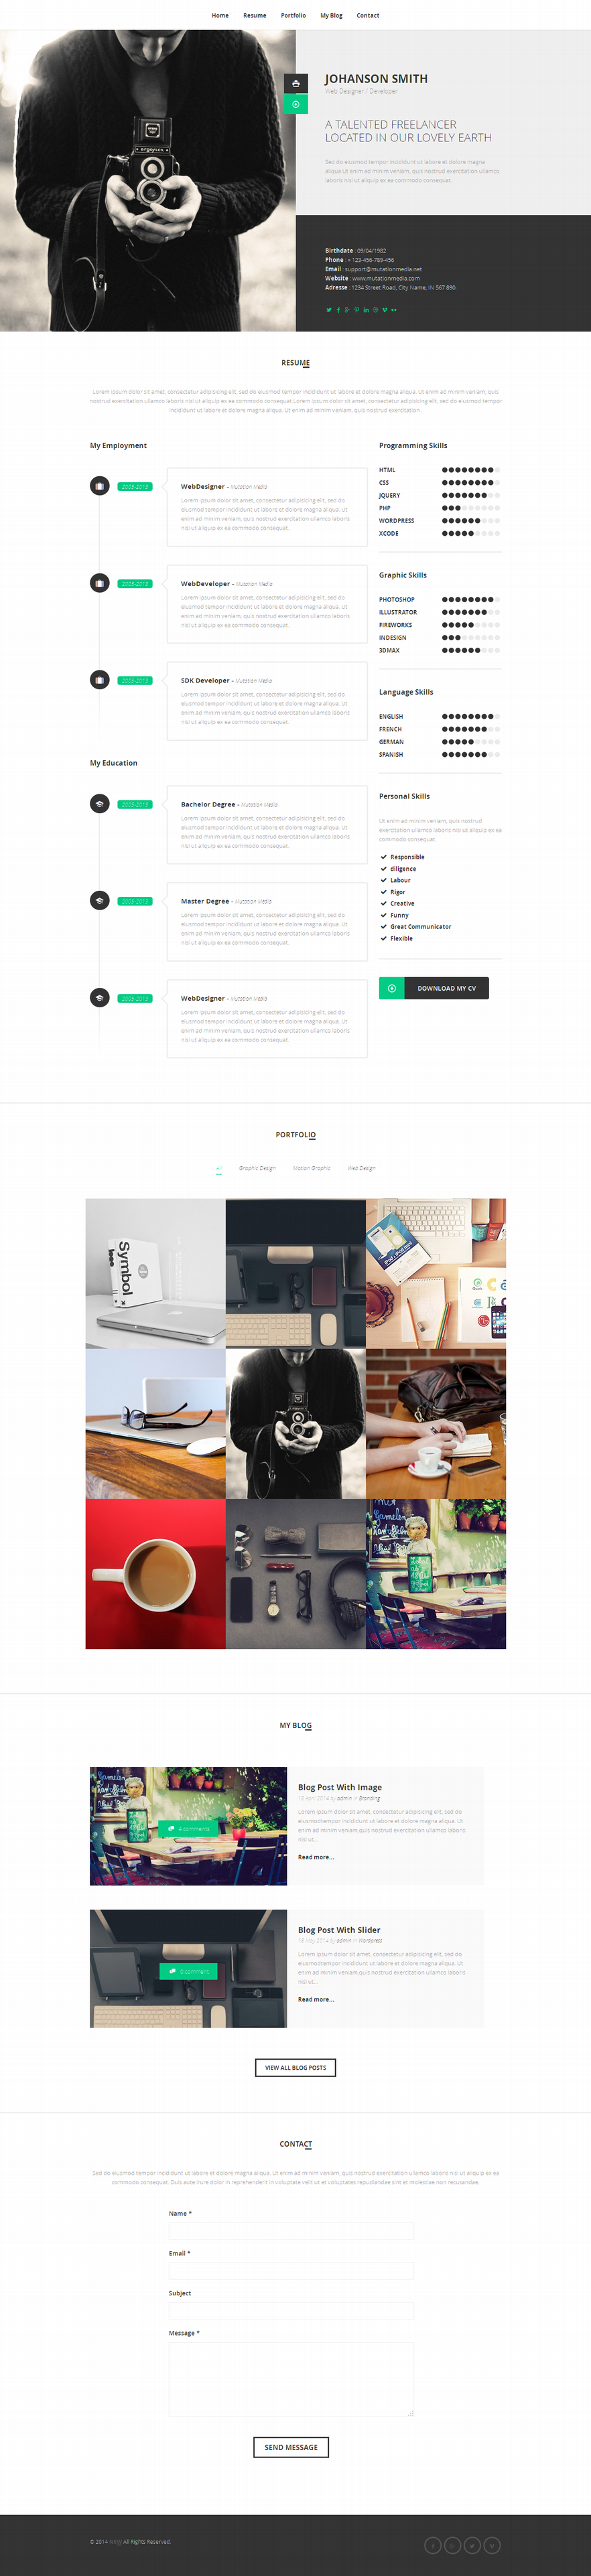 NEW – Retina Ready WordPress Vcard Theme